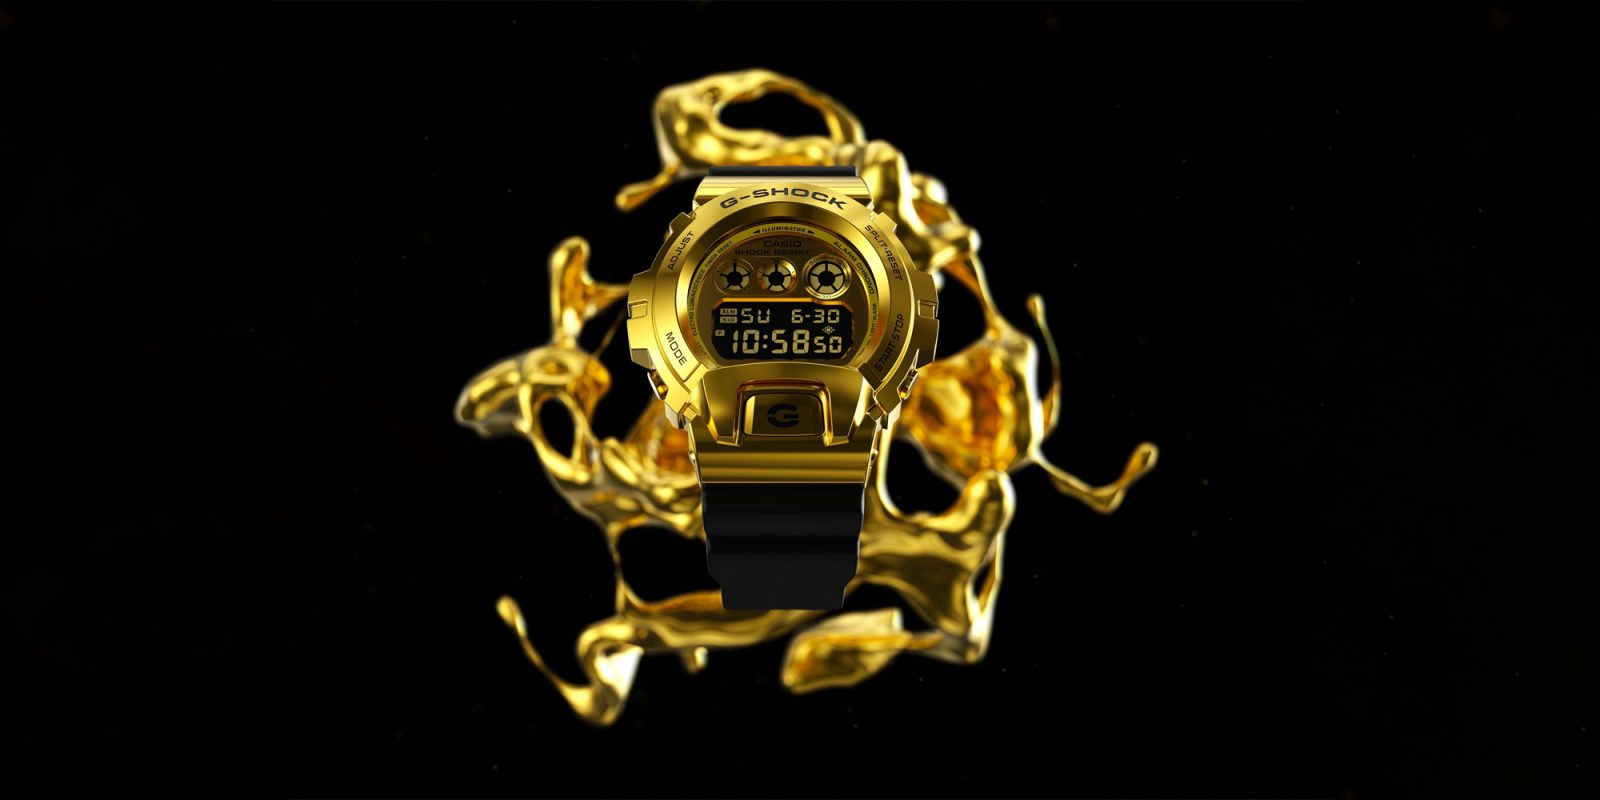 G-Shock to get all-new luxury forged metal bezel watches for spring from $180